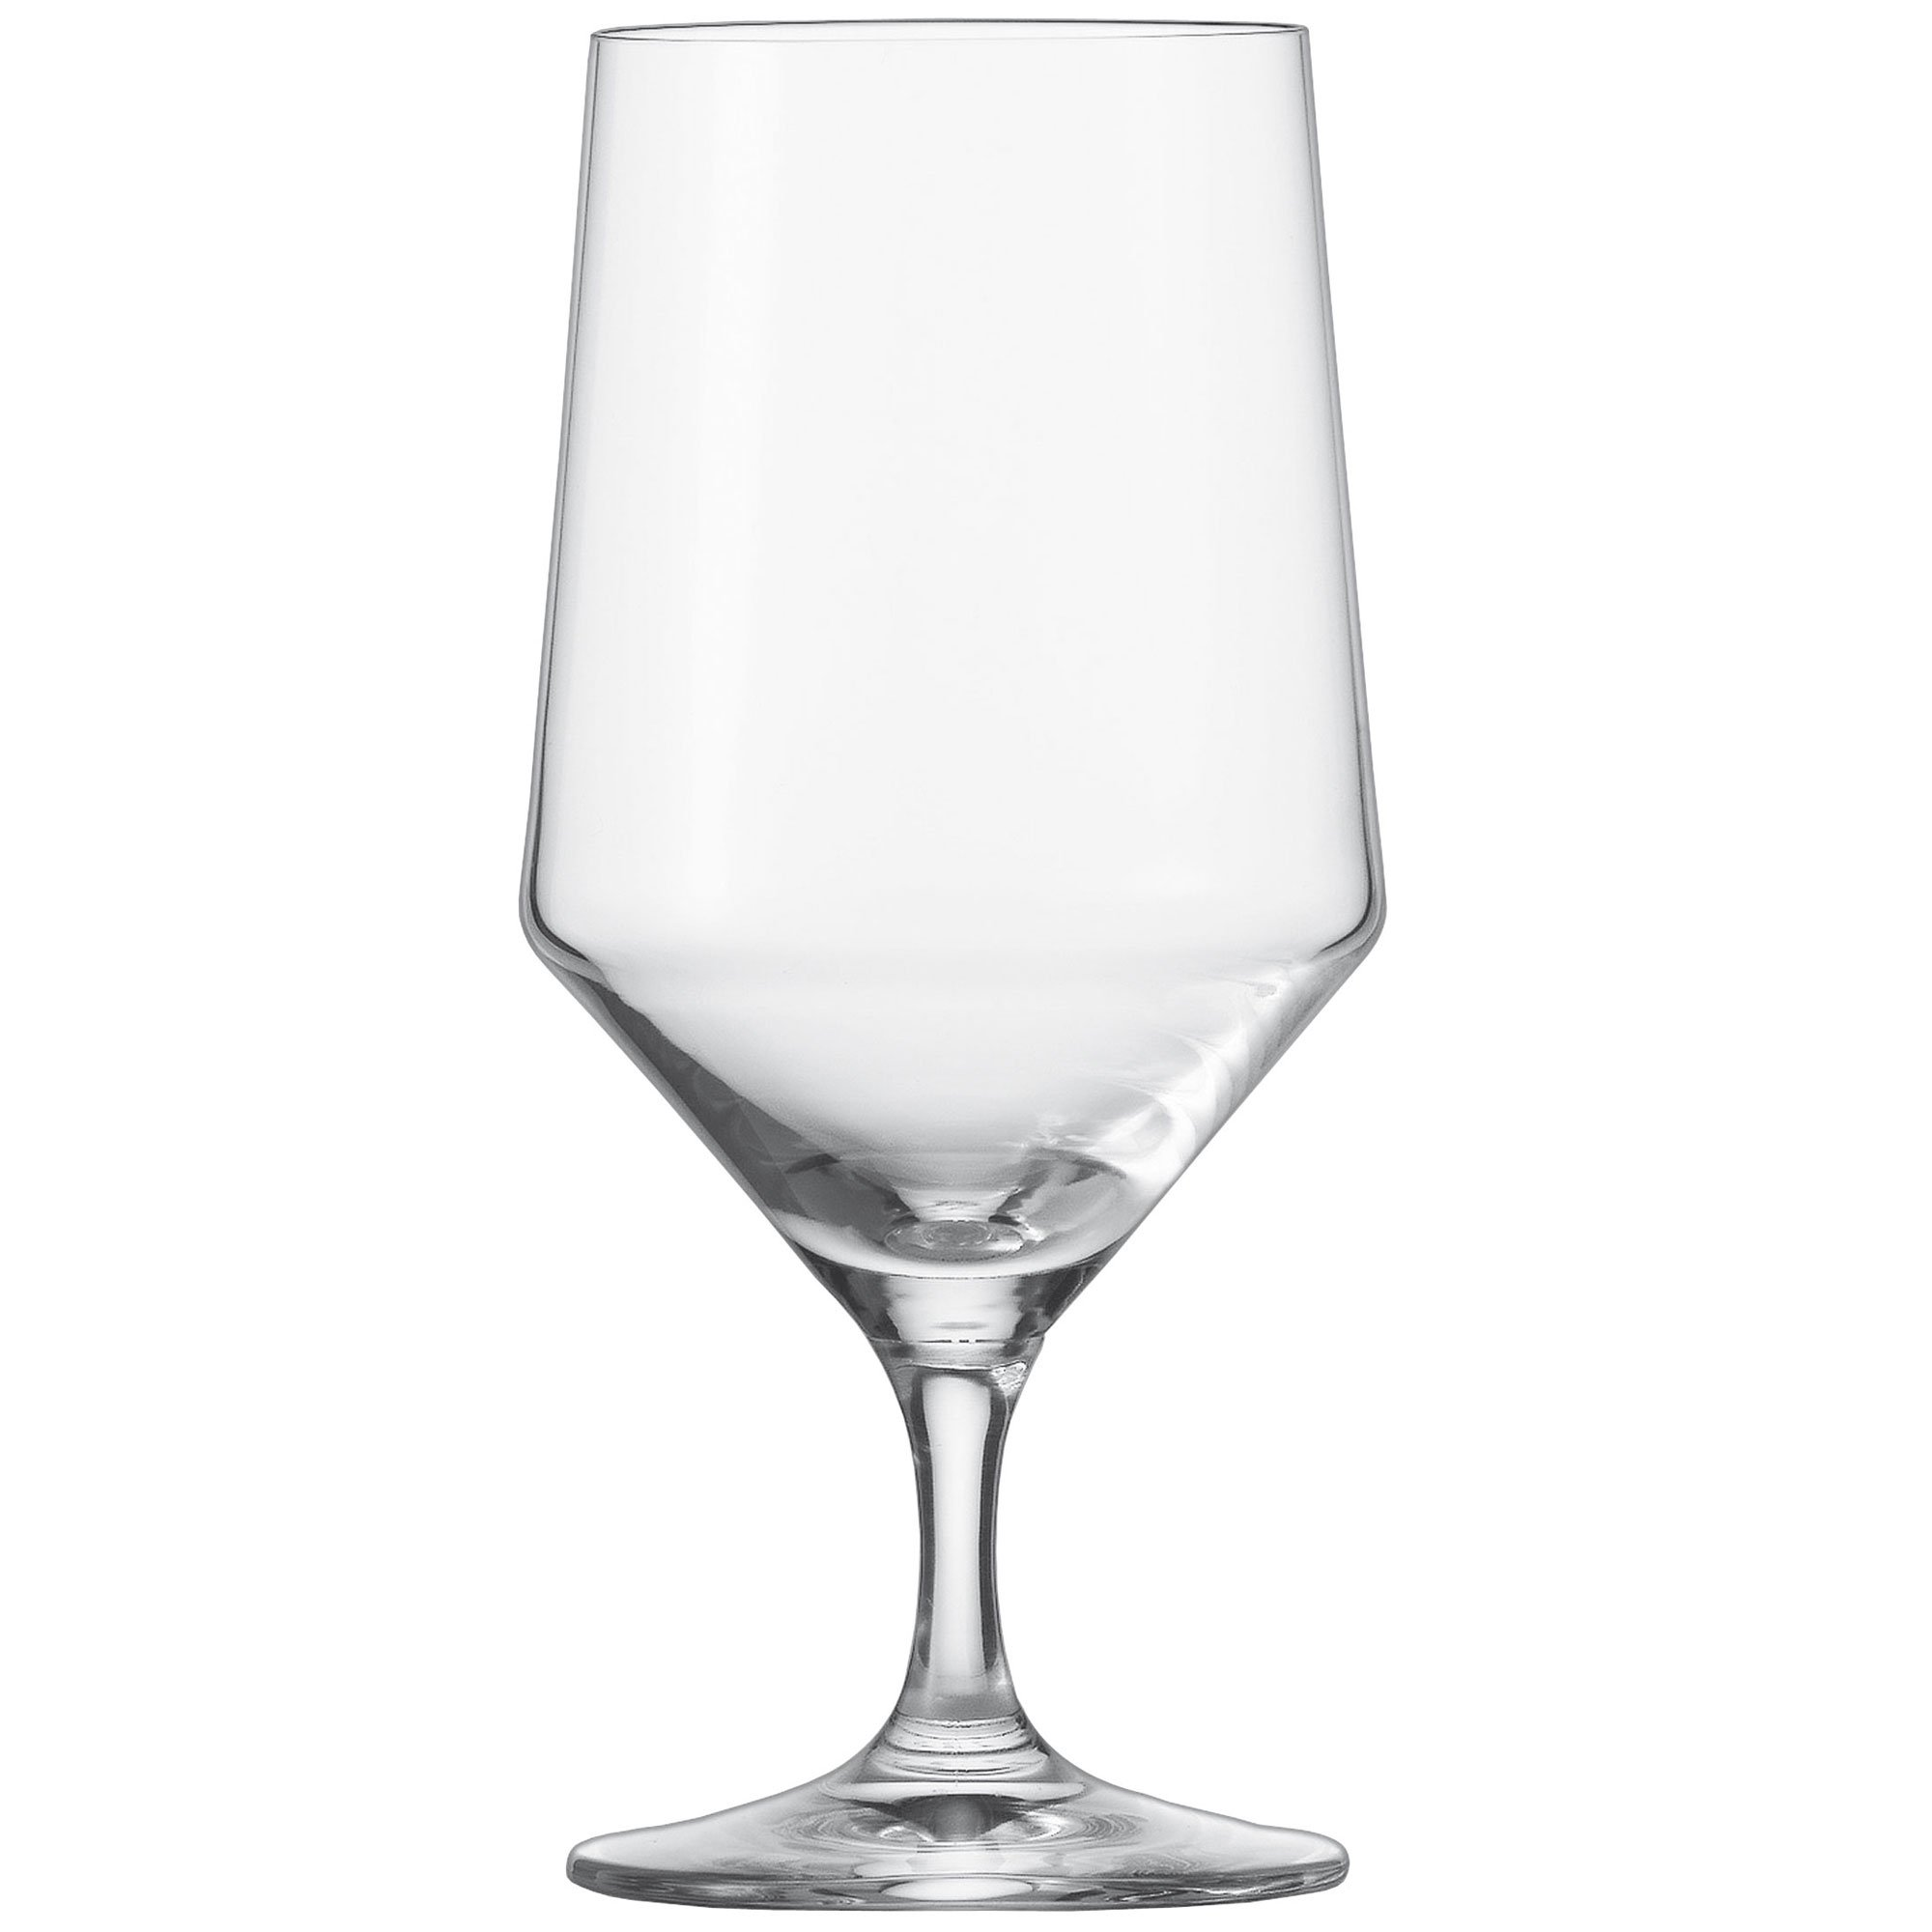 Schott Zwiesel Water Glass 32, 6-Set, Pure, Glass, Form 8545, 451 ml, 112842